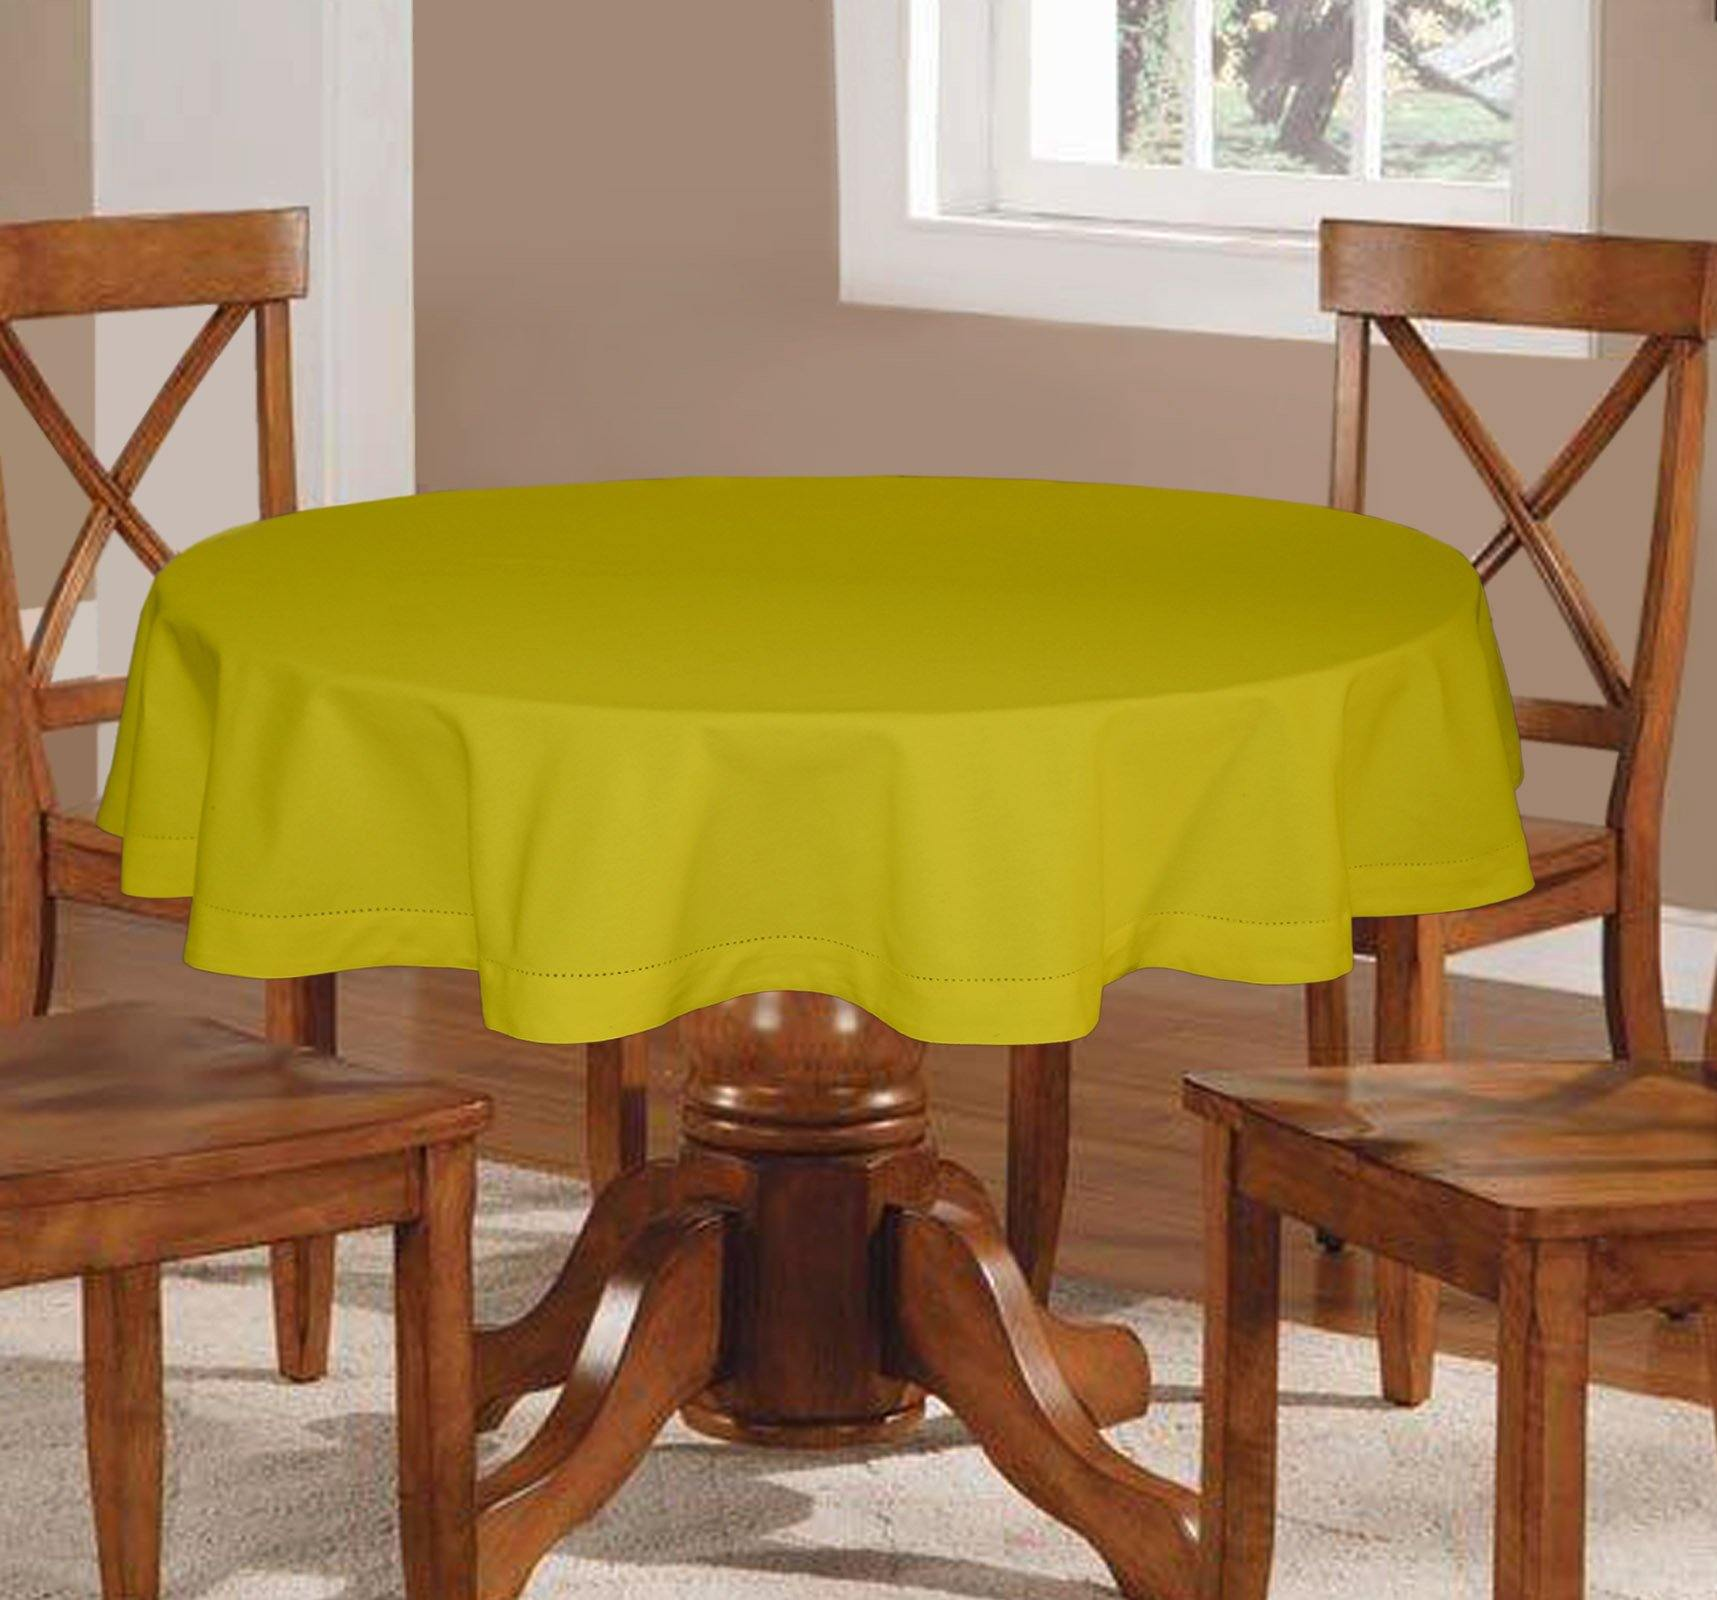 Lushomes Plain Palm Round Table Cloth - 4 seater - Lushomes